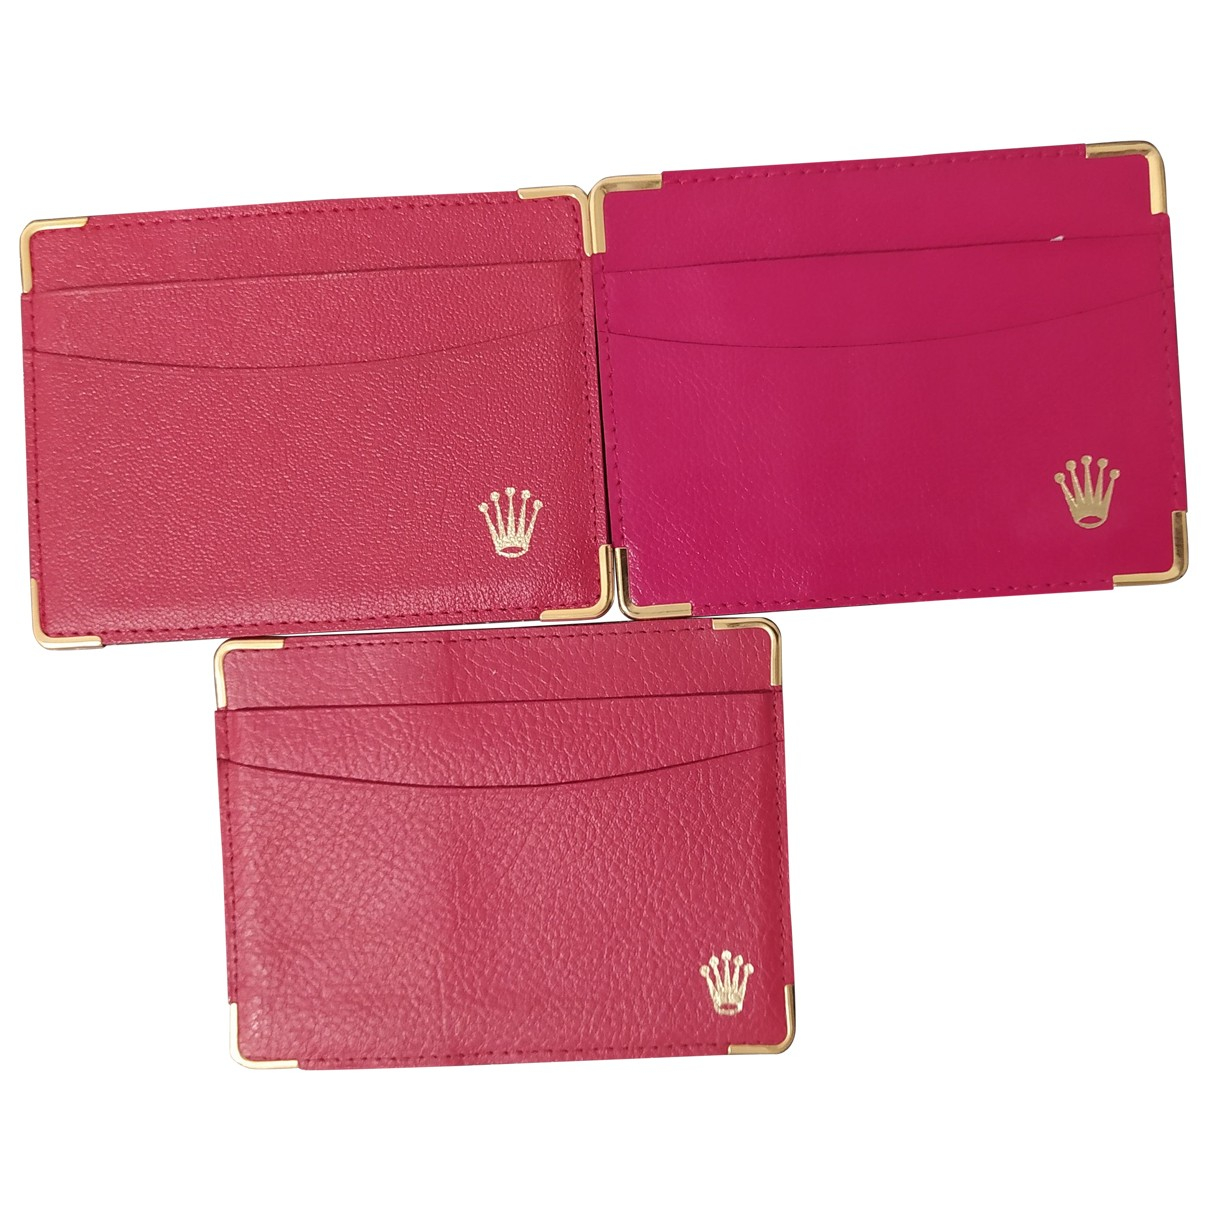 Rolex \N Clutch in  Rot Leder